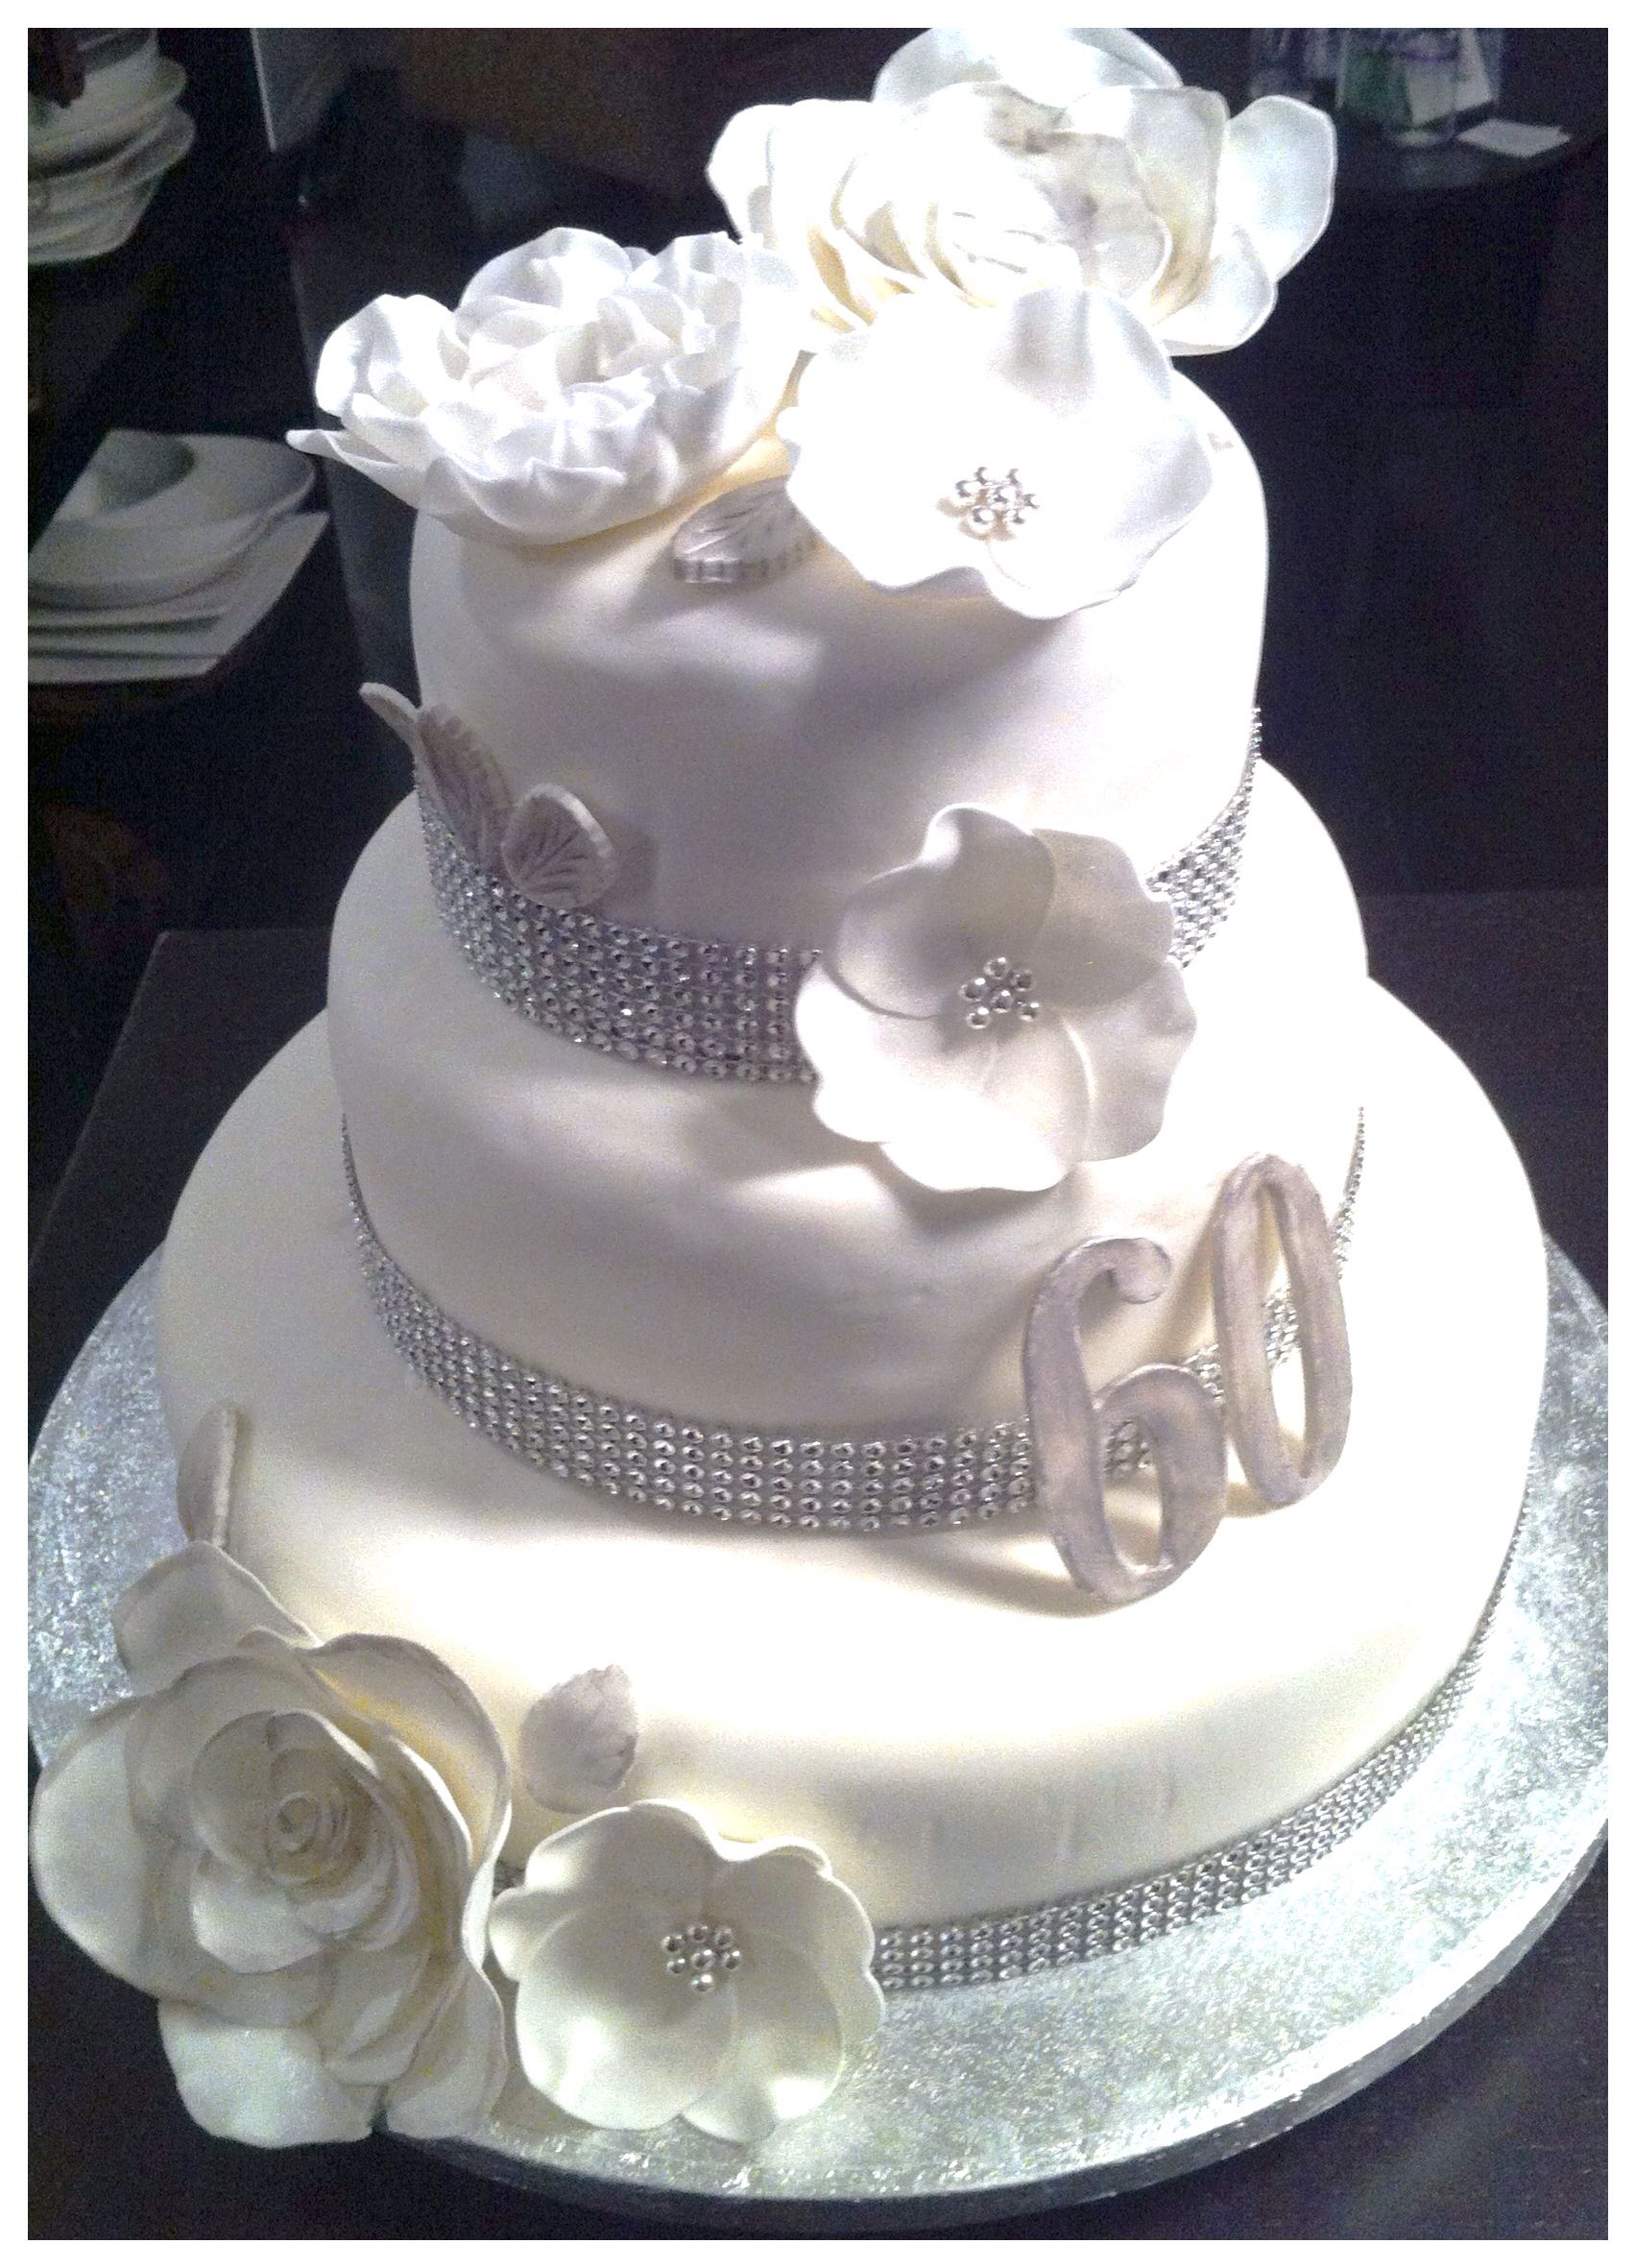 60th wedding anniversary cake cakes and sweets by for 60th wedding anniversary decoration ideas